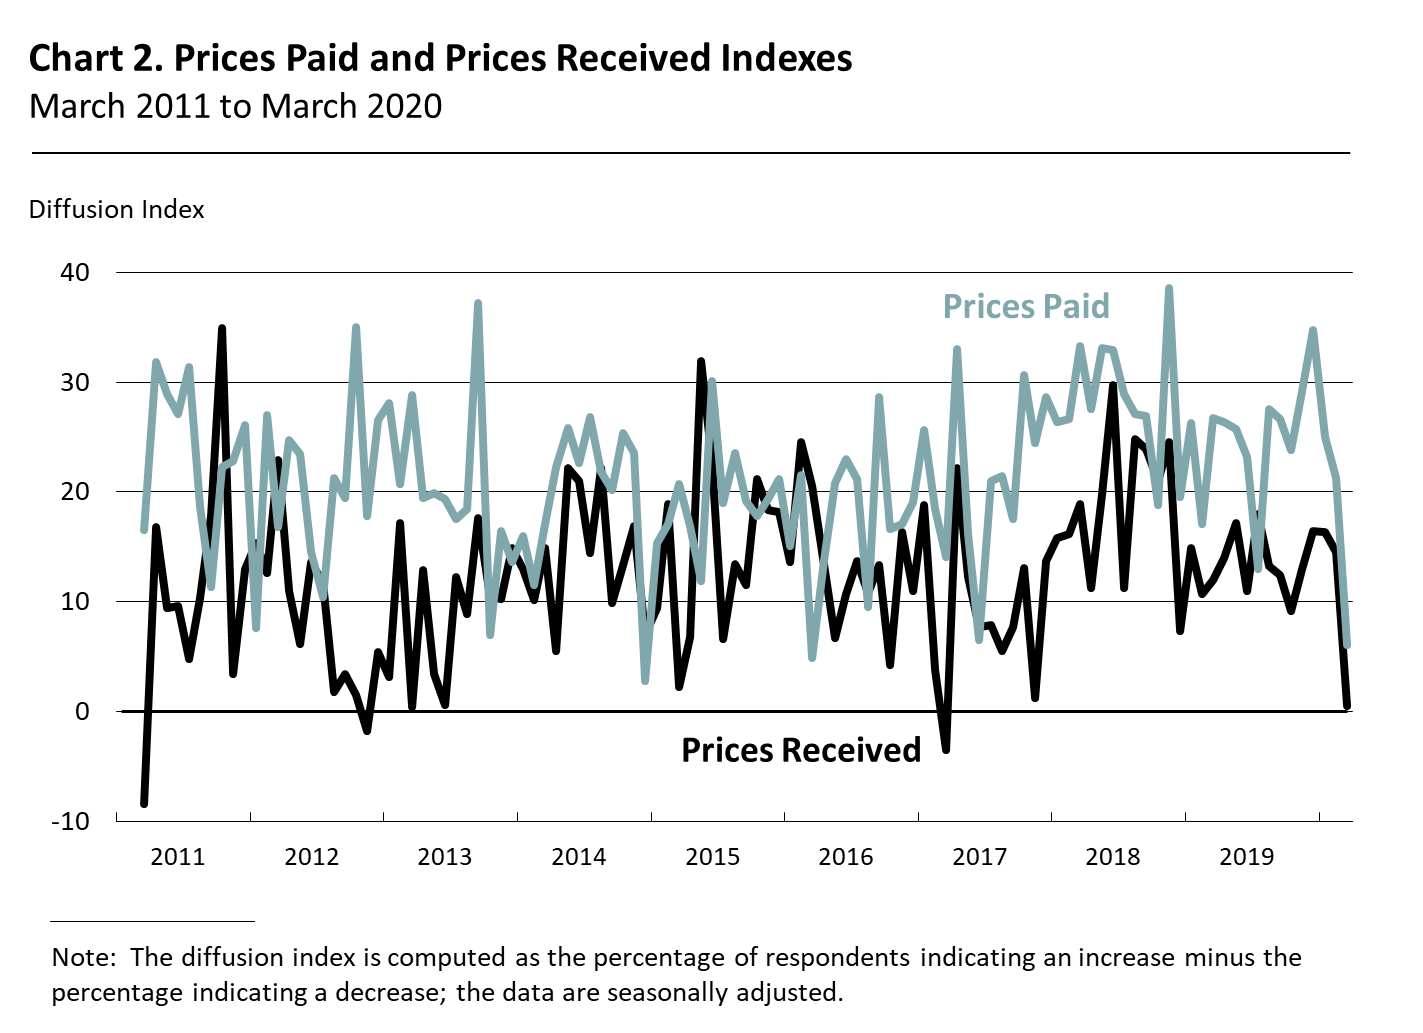 Prices Paid and Prices Received Indexes